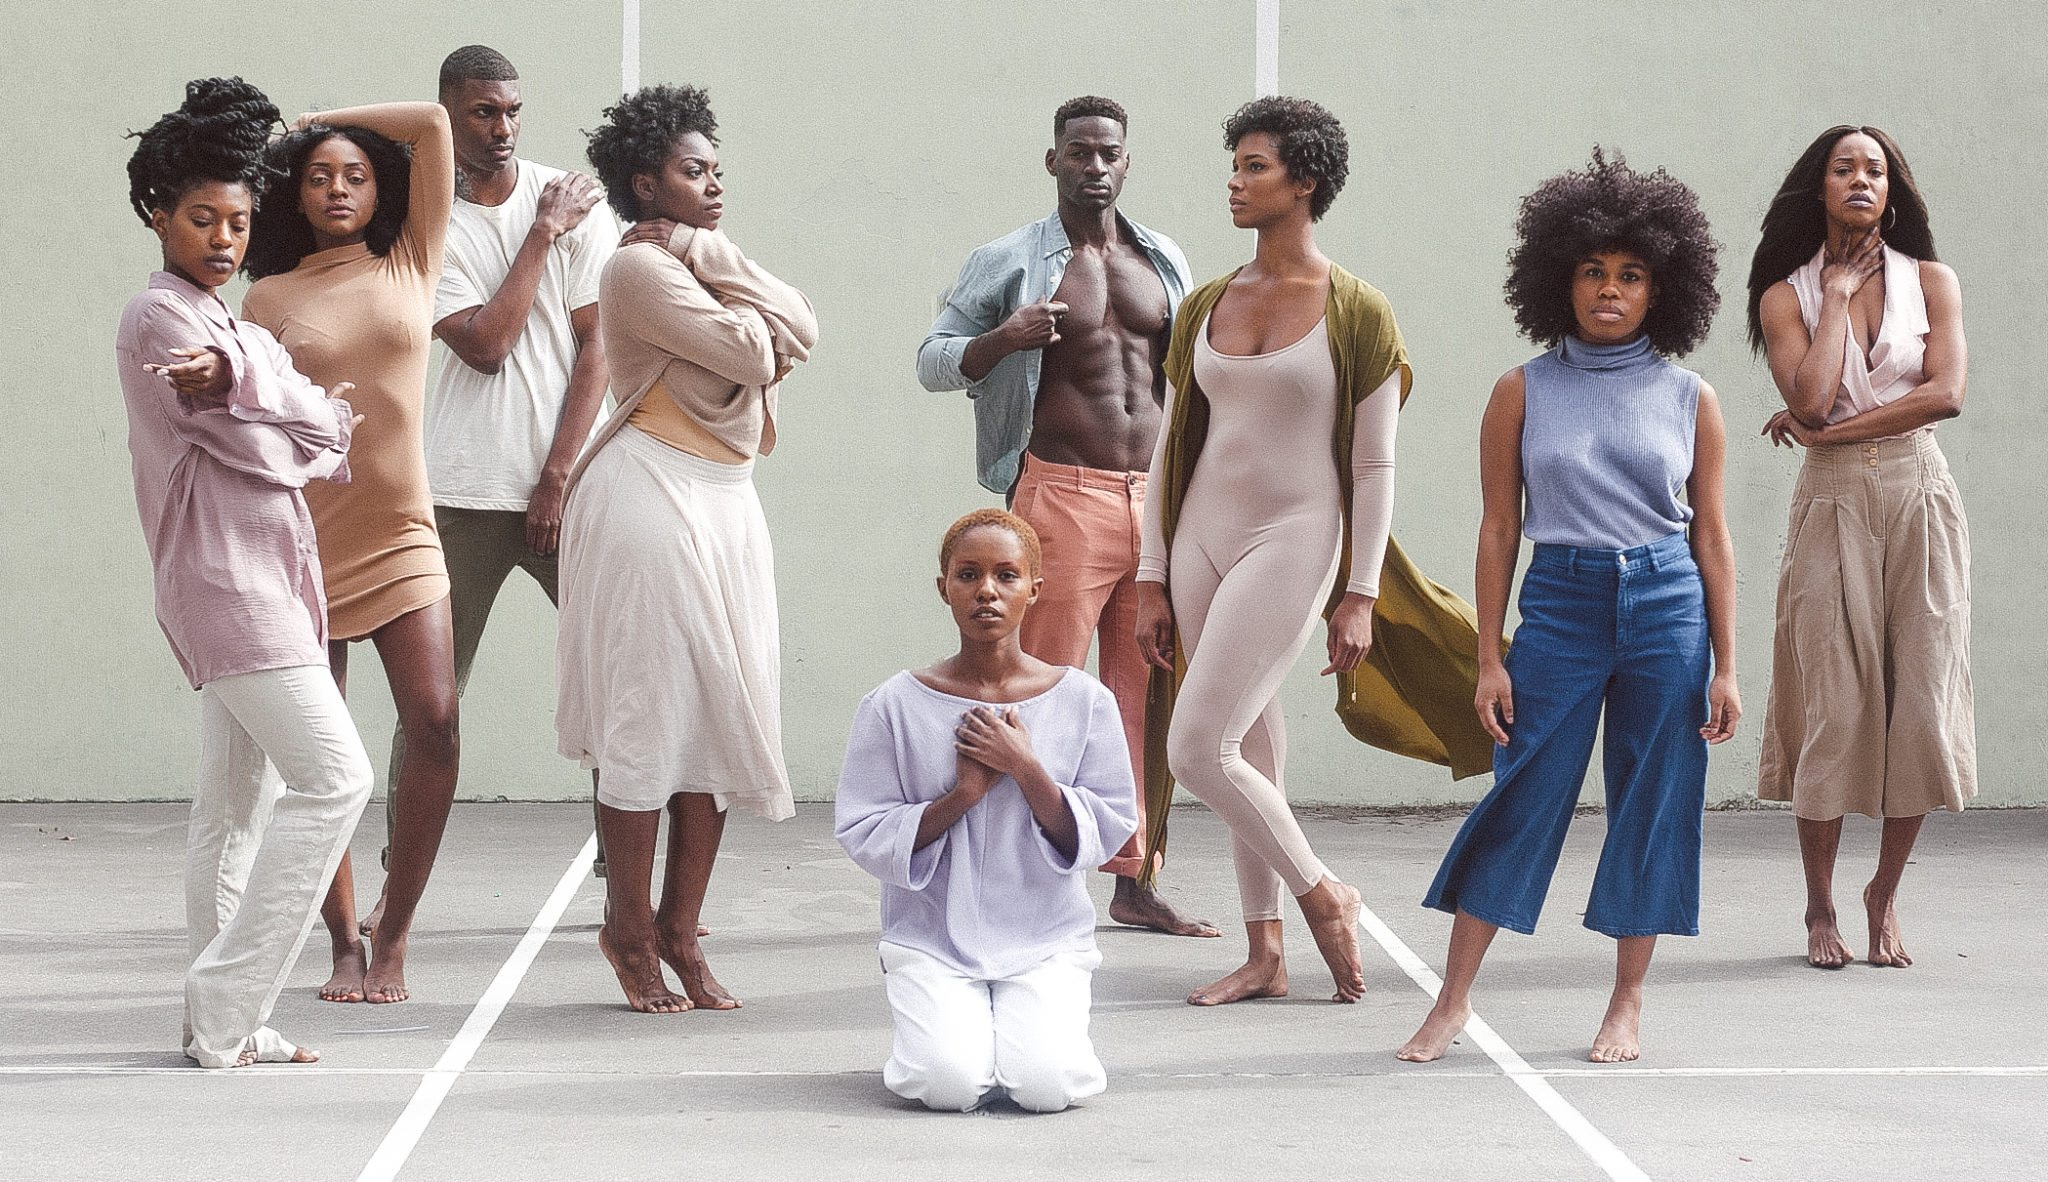 Stock image of Black dancers in different poses